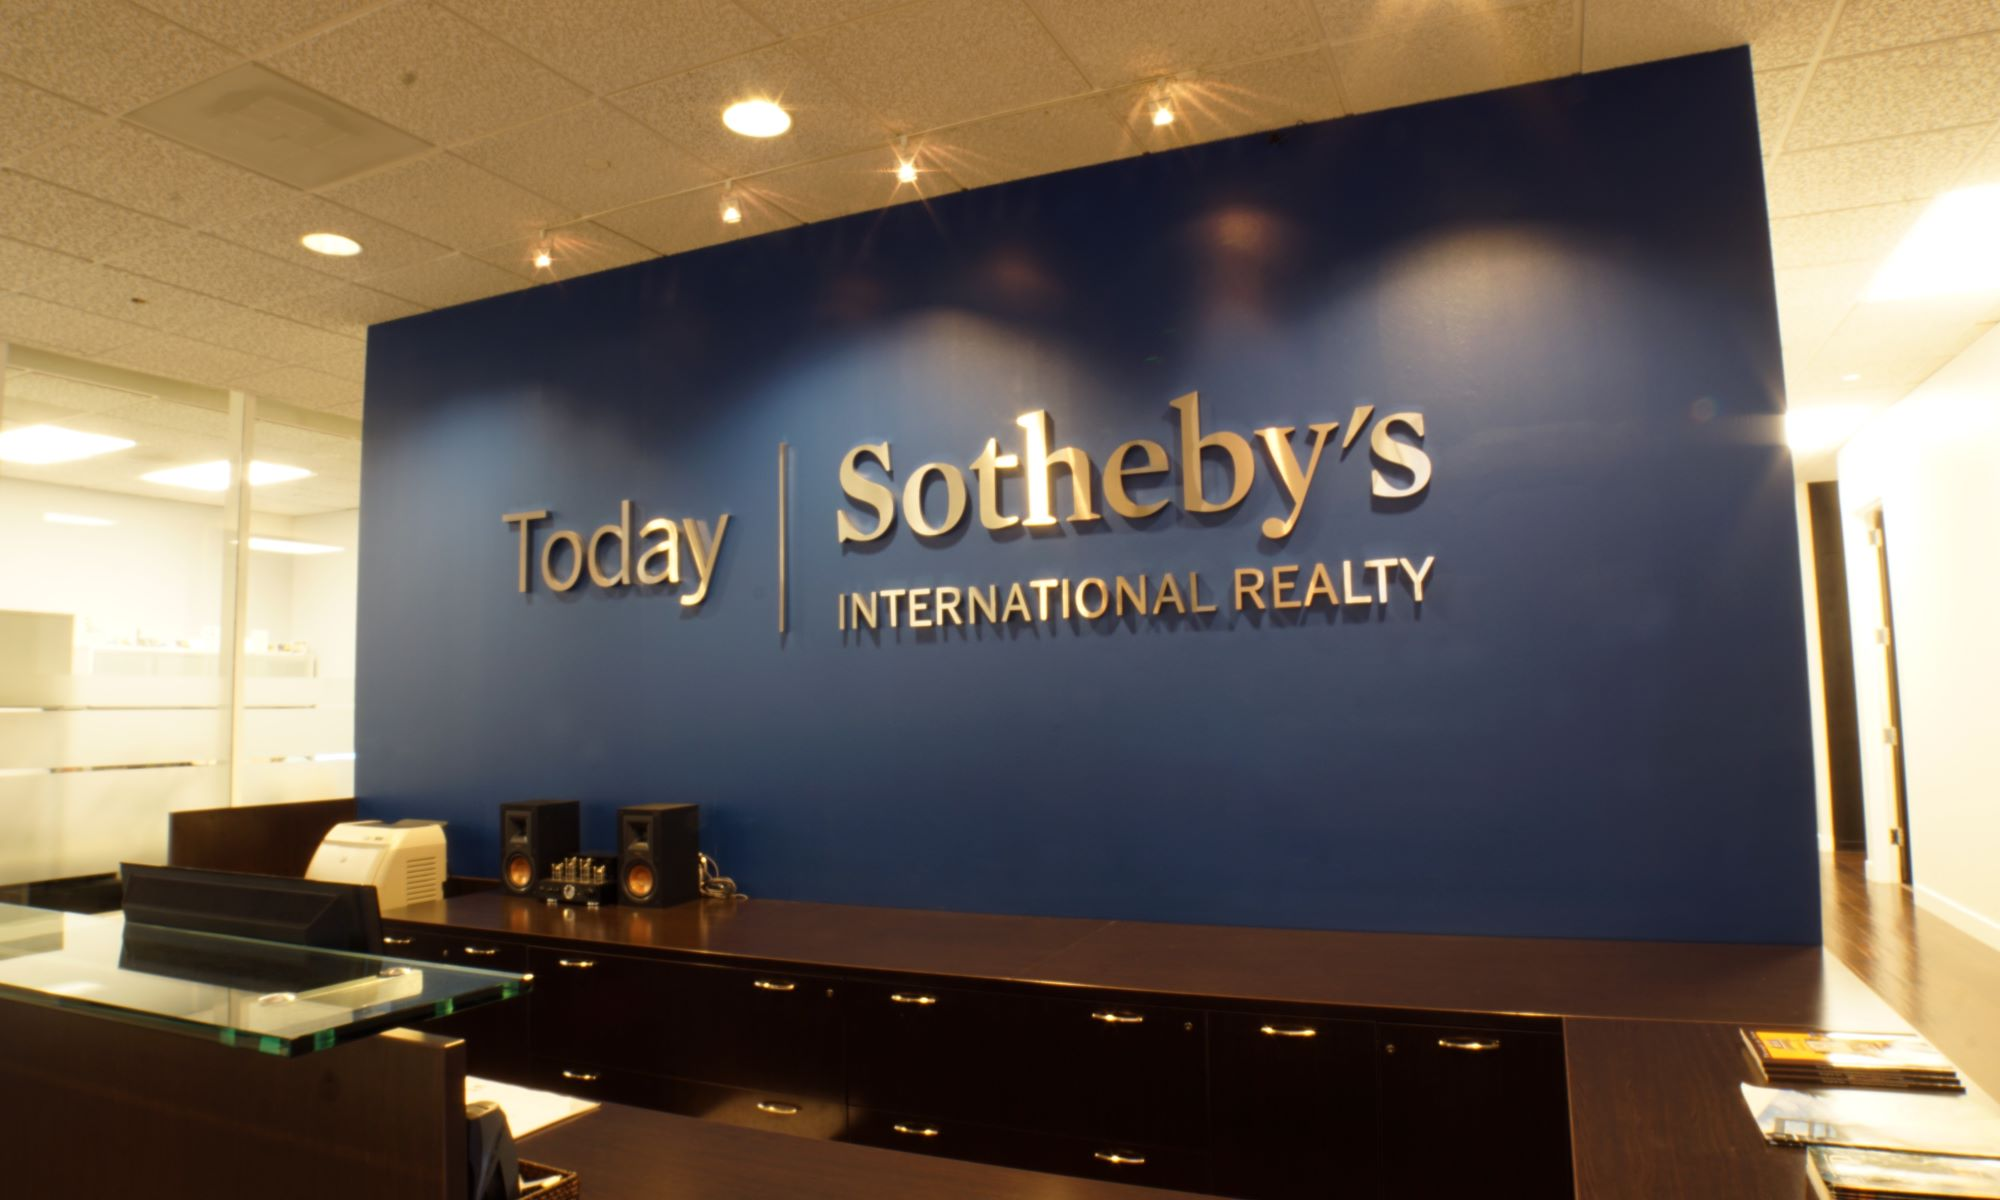 Today Sotheby's International Realty